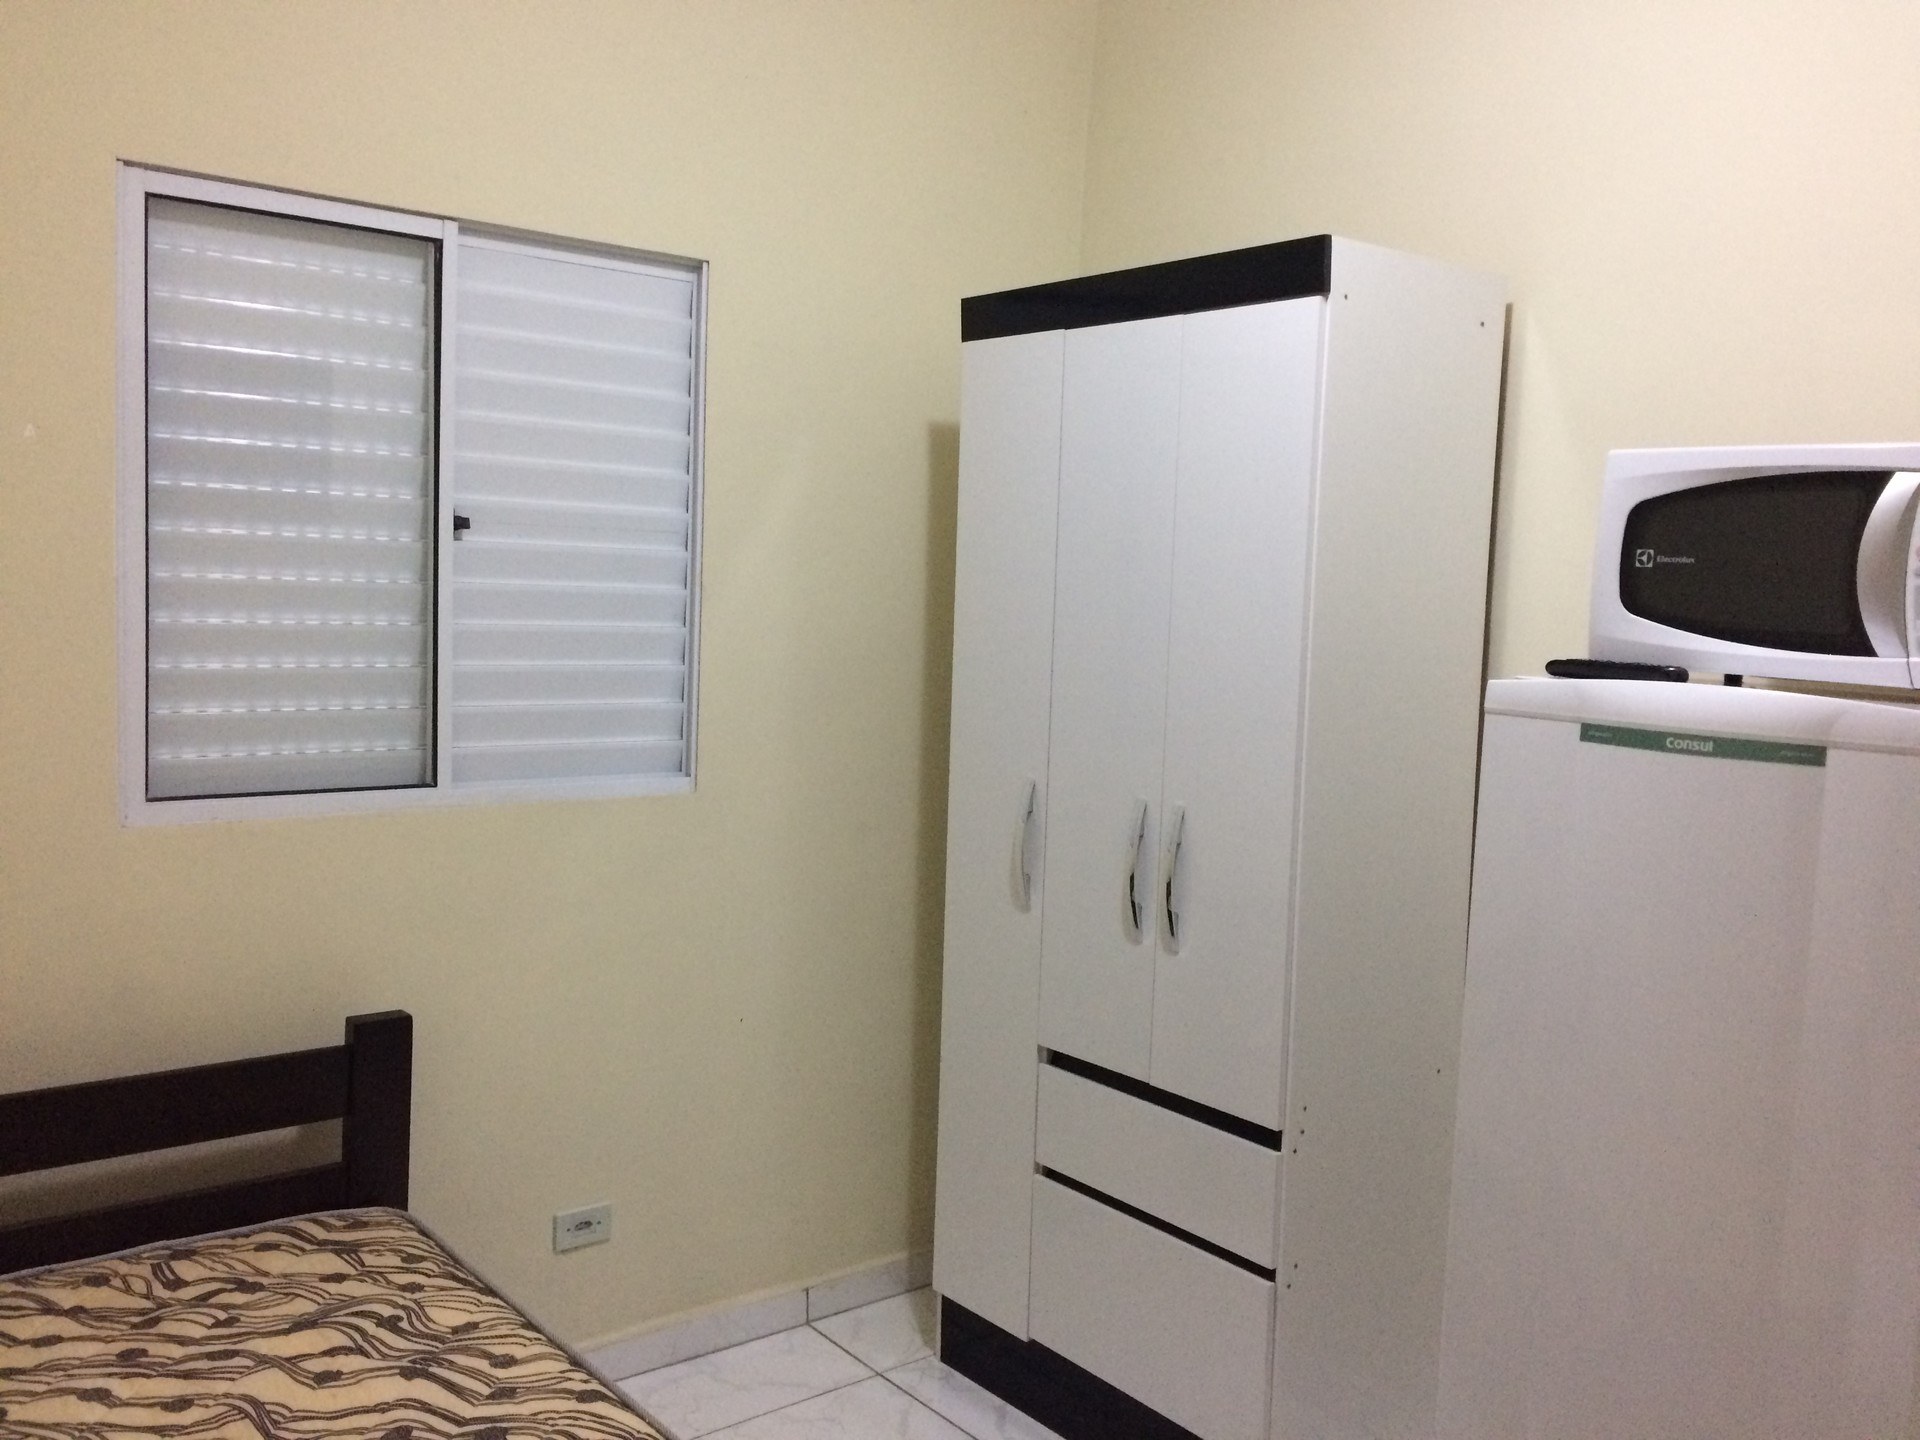 single-room-sao-paulo-near-usp-west-campus-5a9c078284a6f56099c3b3ea42e742d8